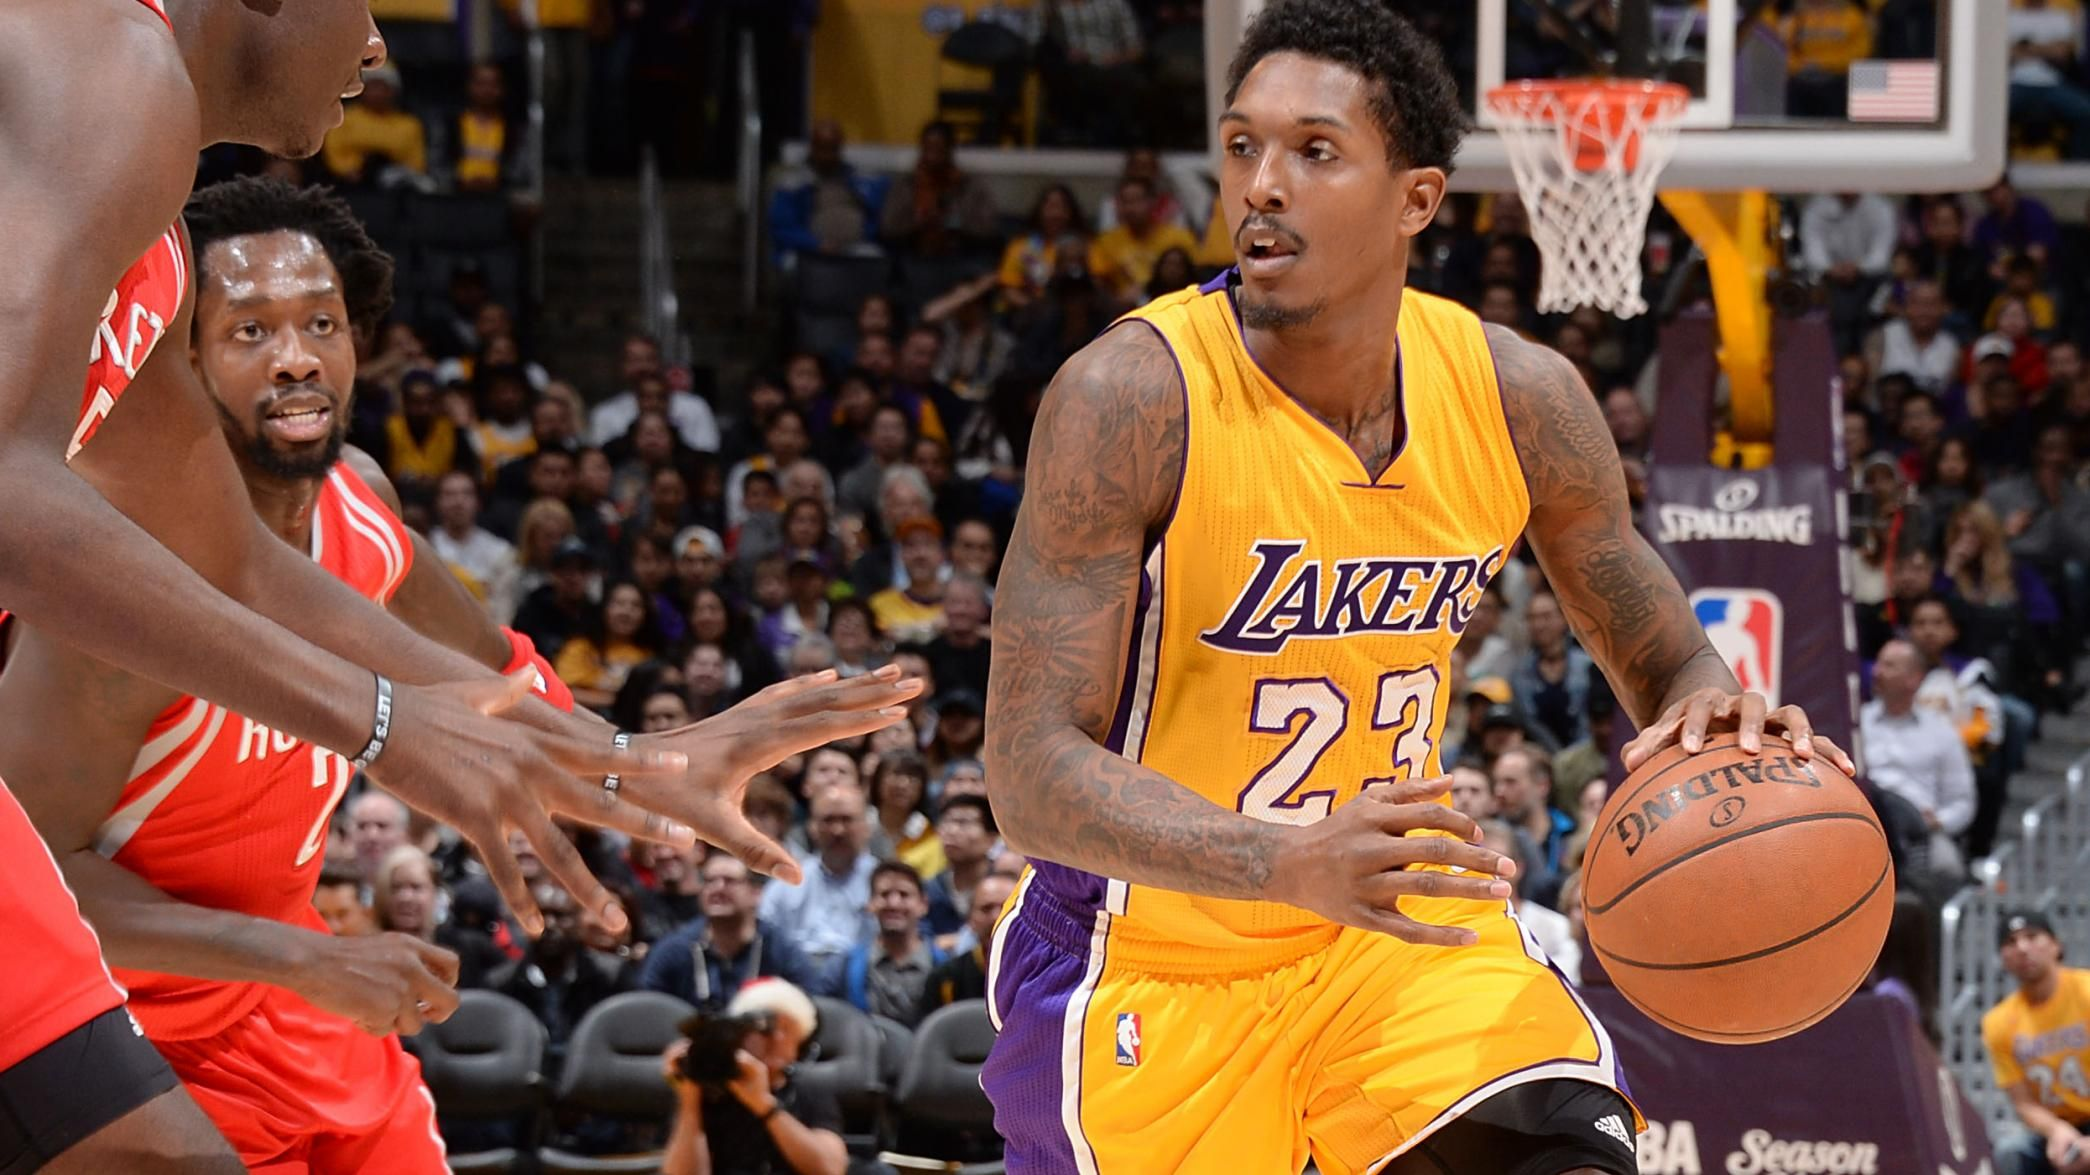 Los Angeles Lakers Trade Of Lou Williams To Houston Rockets Causes Ripples Nba Com Lou Williams Houston Rockets Lakers